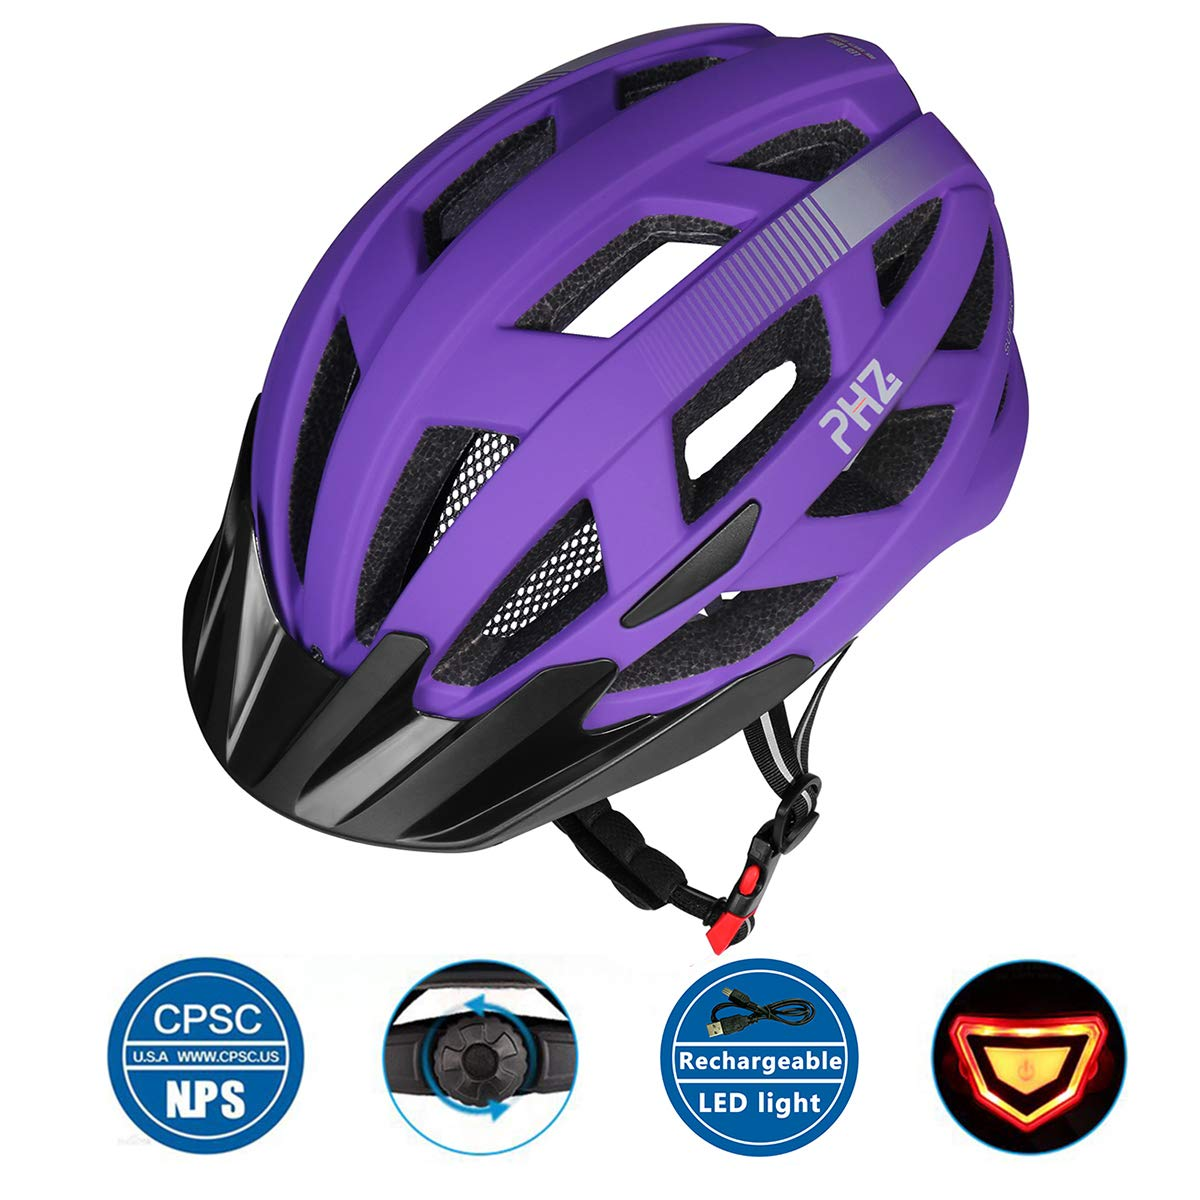 PHZ Adult Bike CPSC Certified Helmet with Rechargeable Led Back Light/Detachable Visor Ideal for Road Ride Mountain Bike Bicycle for Men and Women (Medium, Purple)